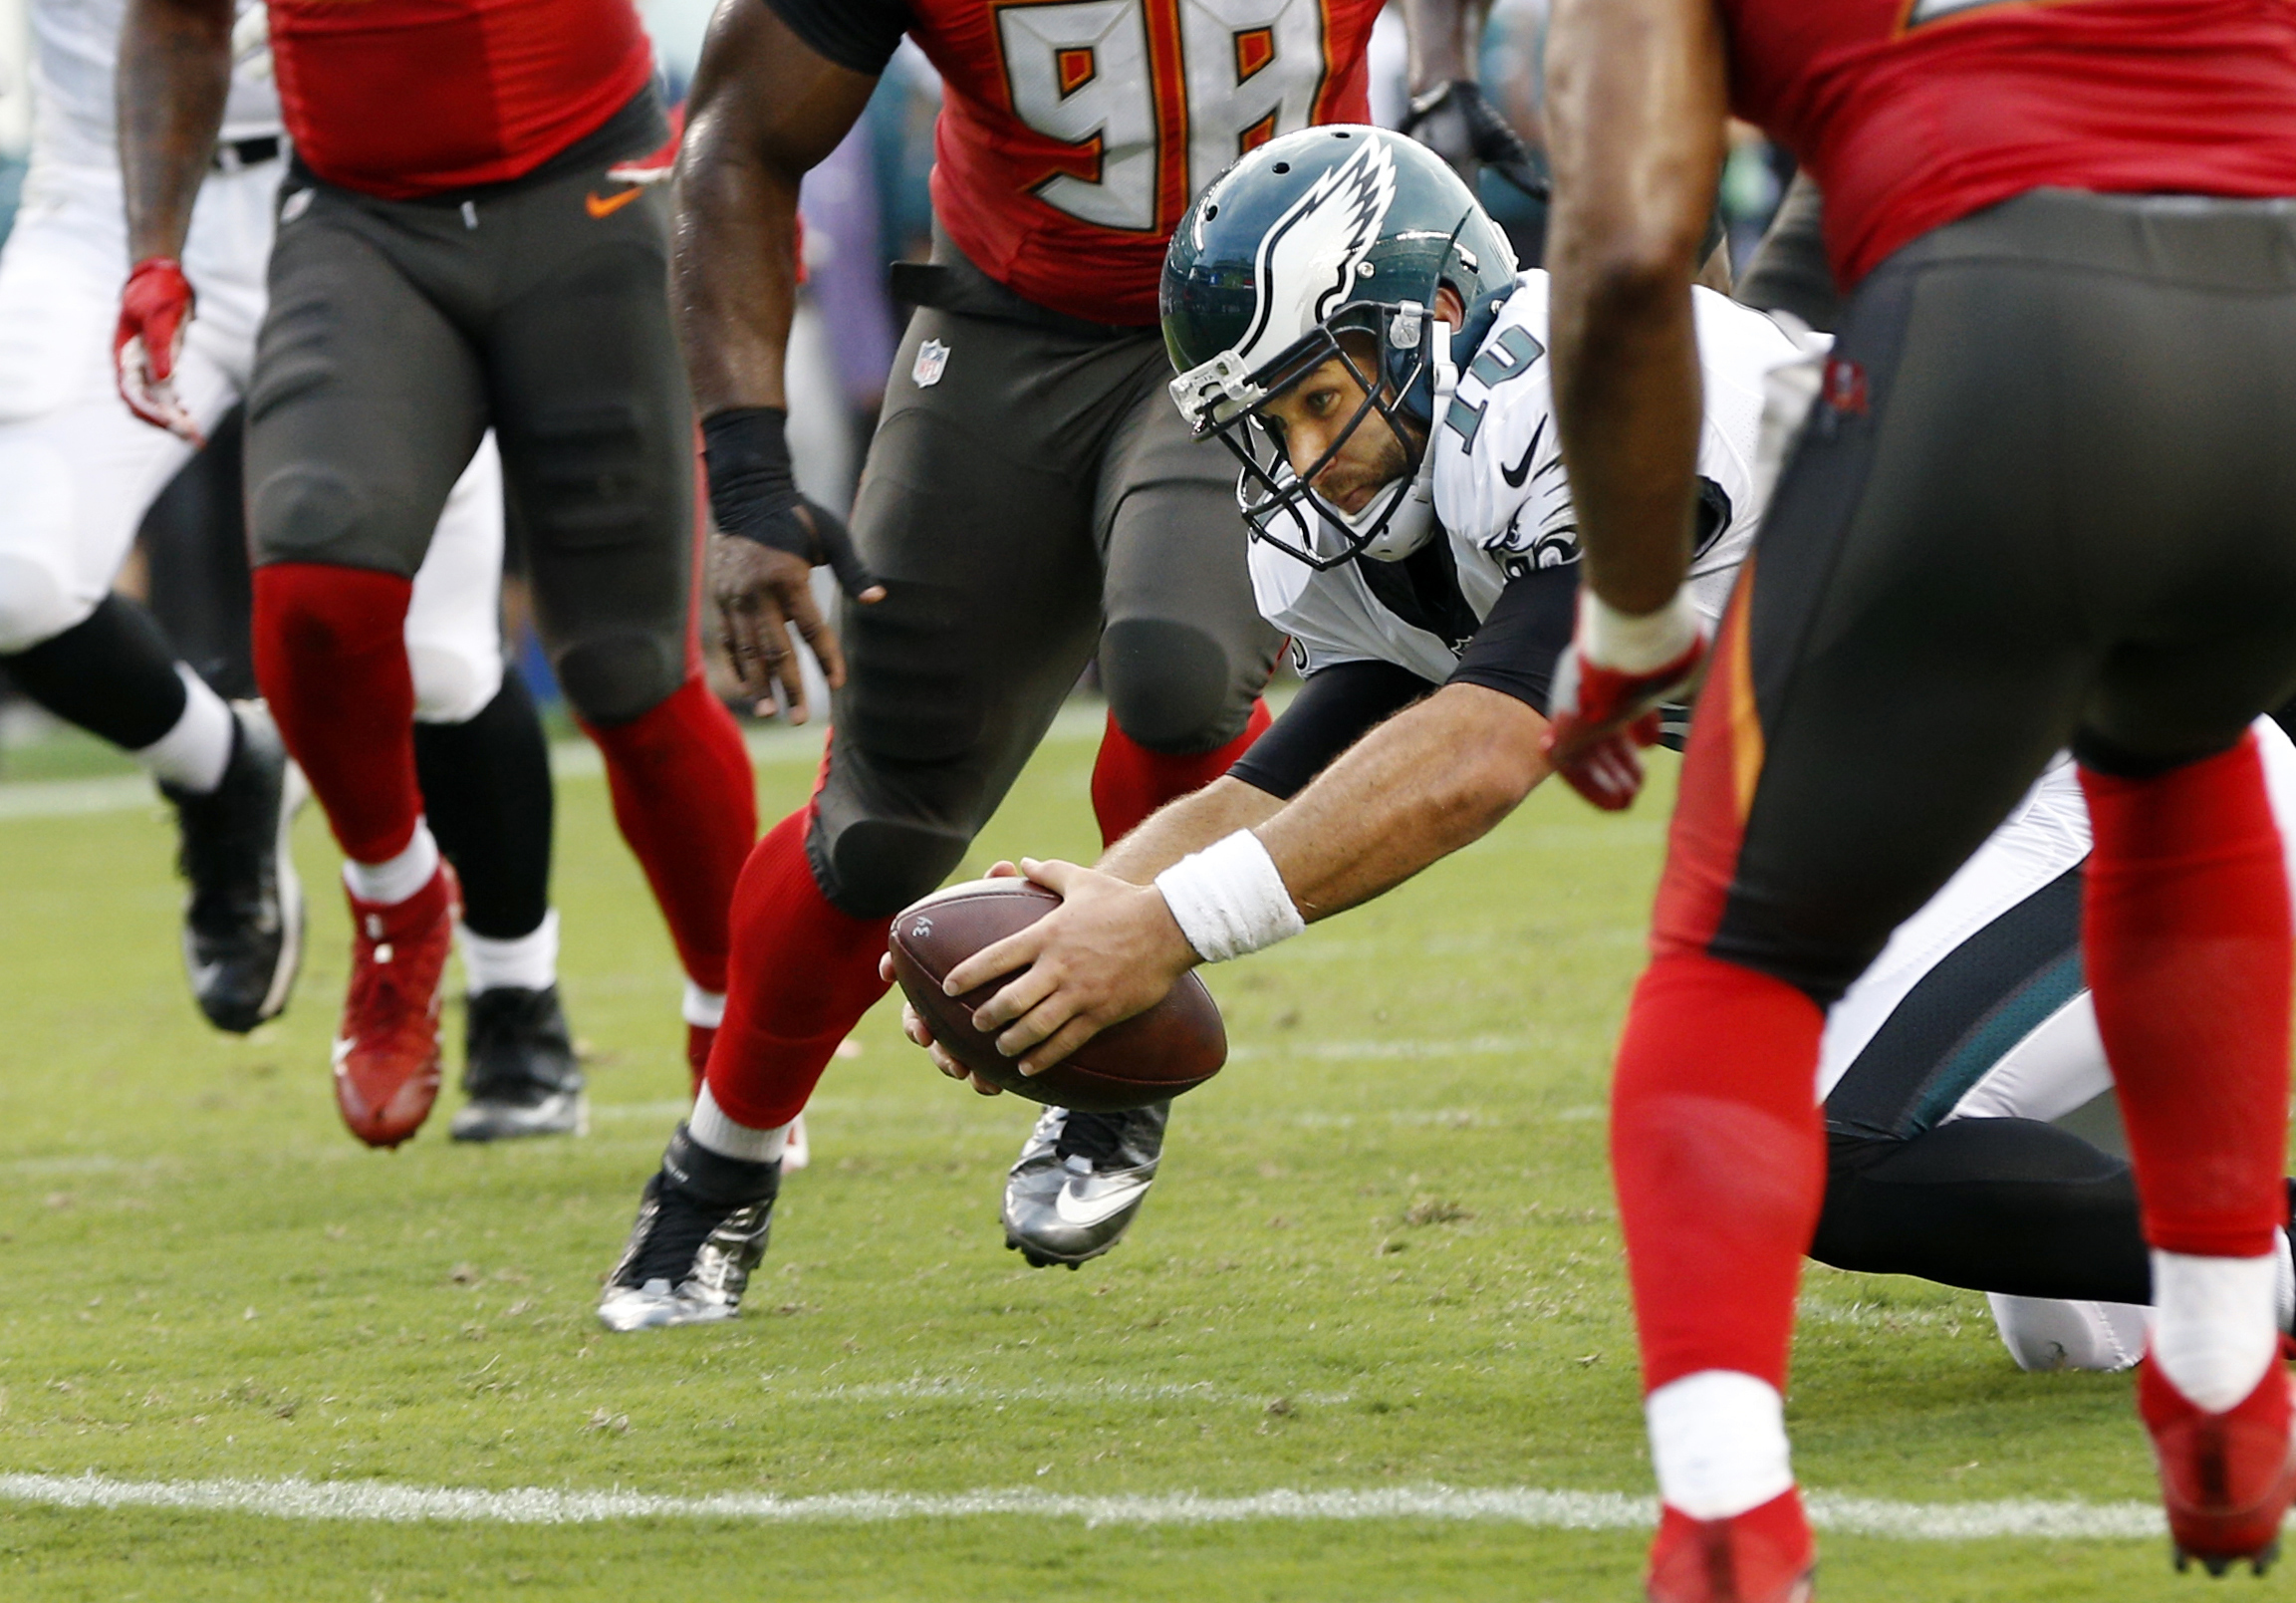 Philadelphia Eagles quarterback Chase Daniel (10) dives between Tampa Bay Buccaneers defenders for a touchdown during the first half of a preseason NFL football game Thursday, Aug. 11, 2016, in Philadelphia. (AP Photo/Chris Szagola)